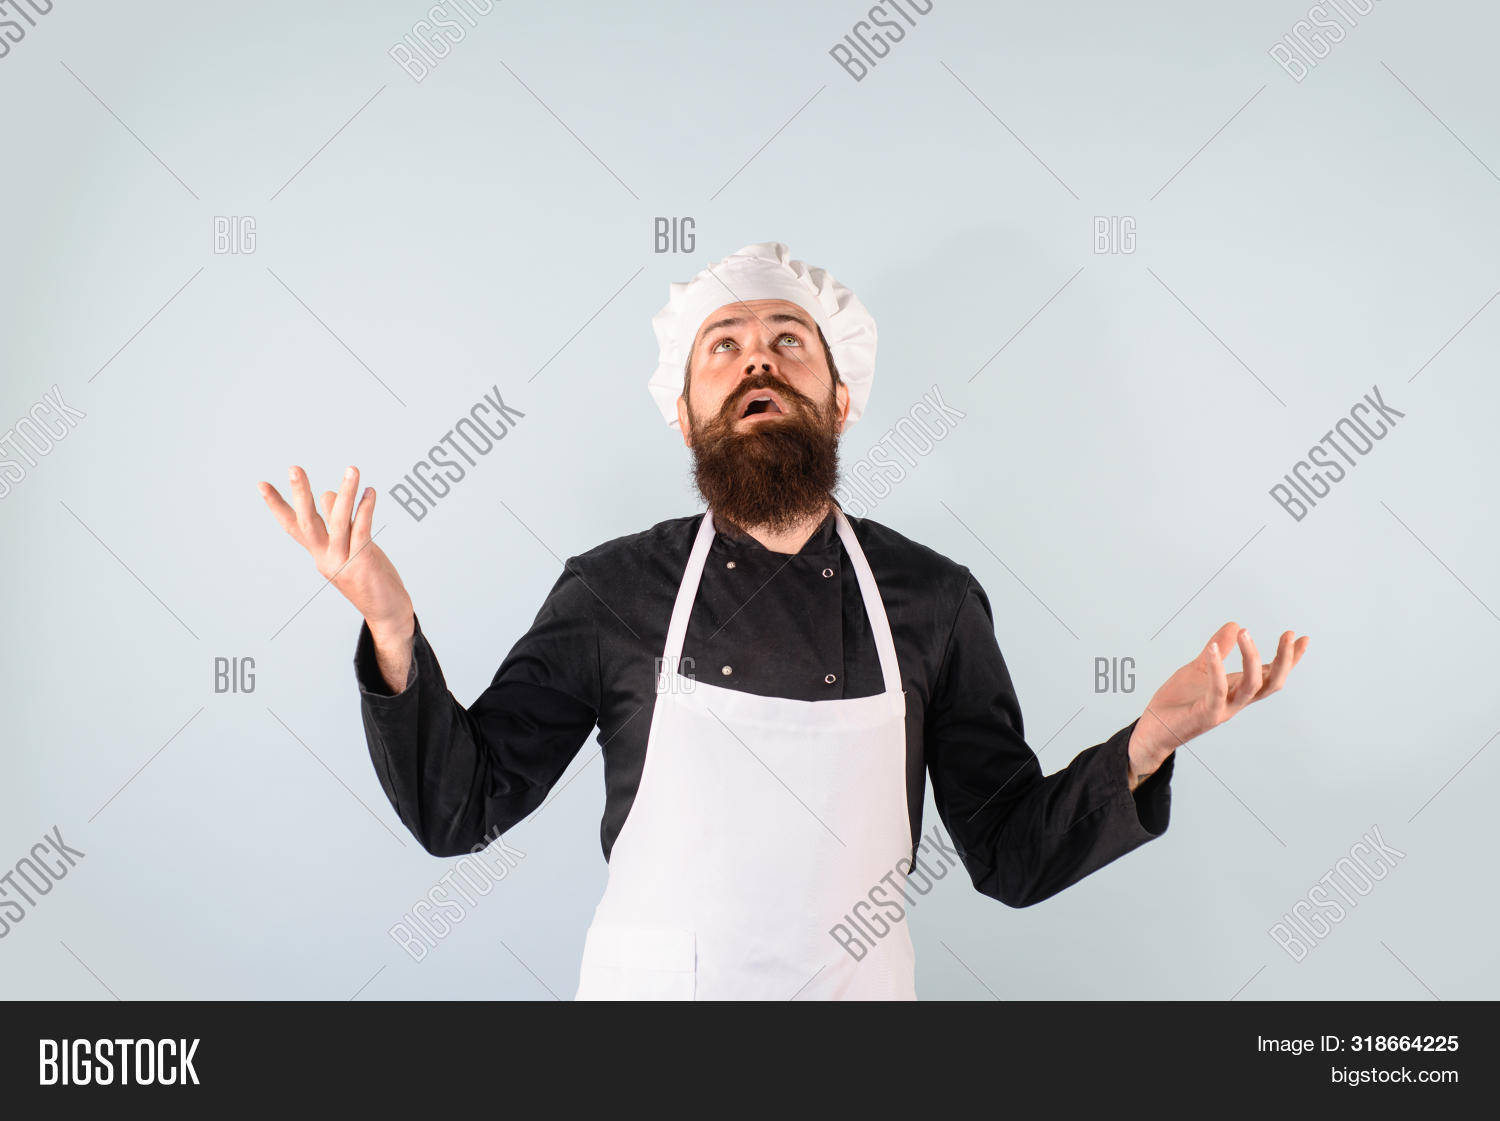 Cooking, Food, Profession And Inspiration Concept. Male Chef, Cook Or Baker In White Uniform. Bearde